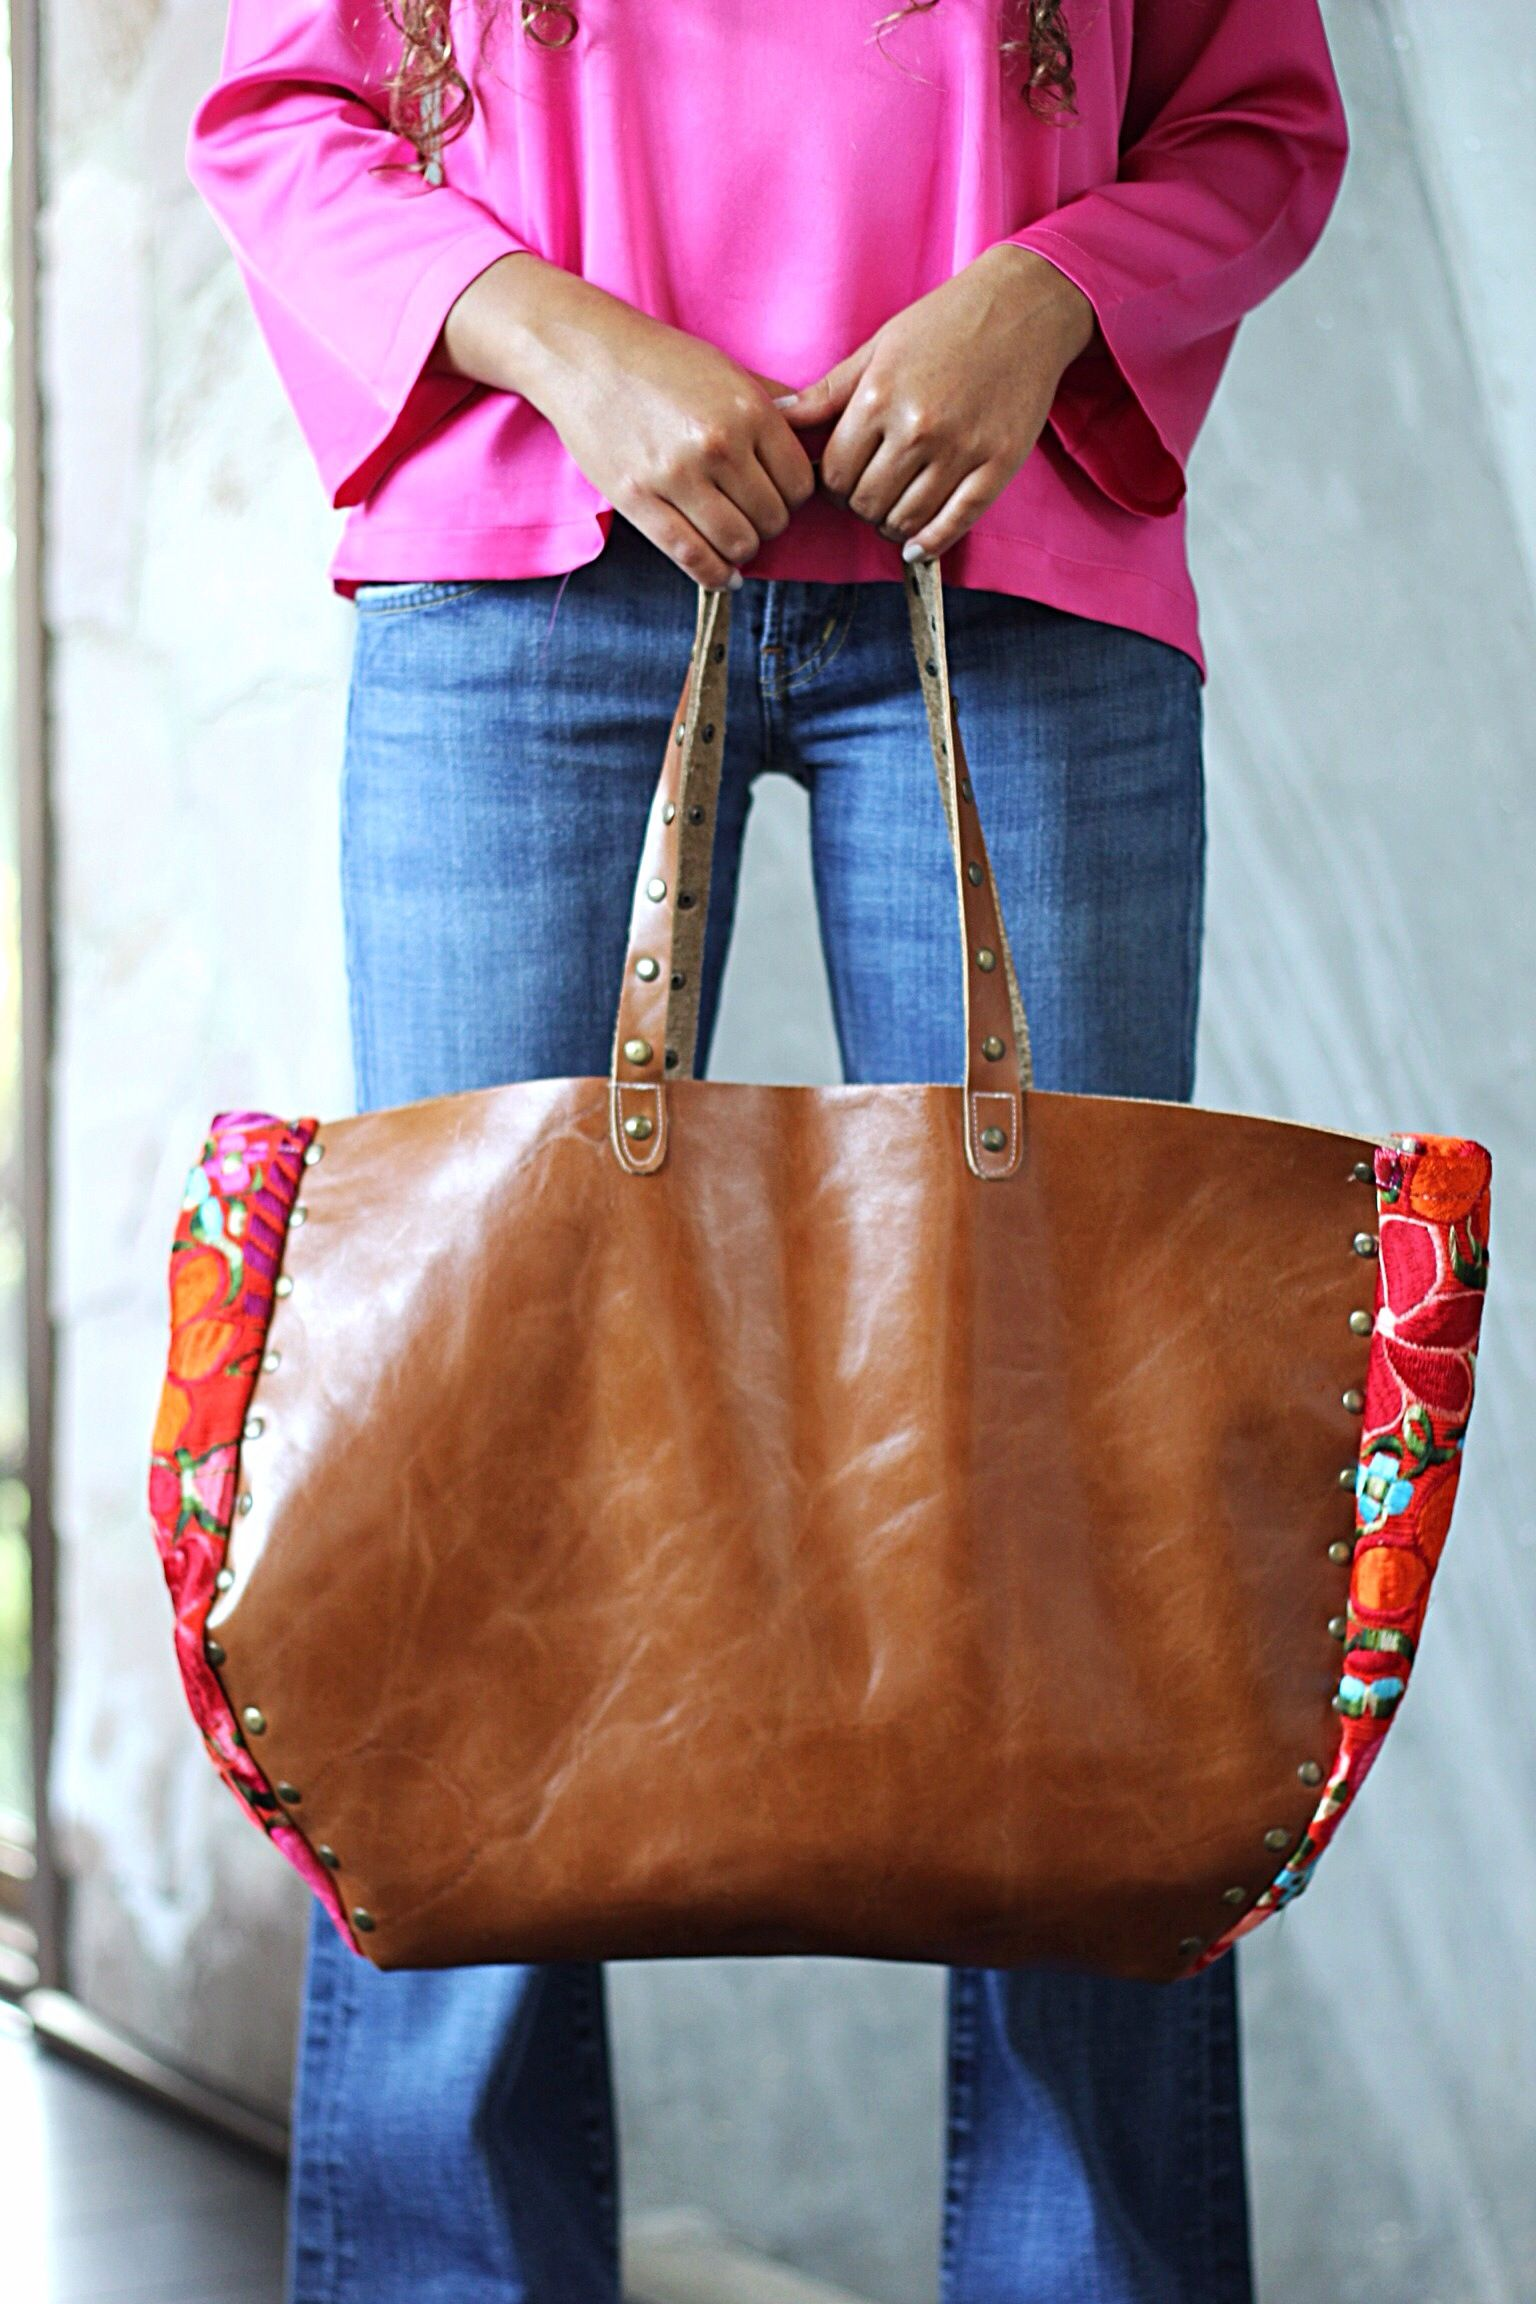 Leather Handbag By Lorenza Filati Made In Guatemala I Want This Bag